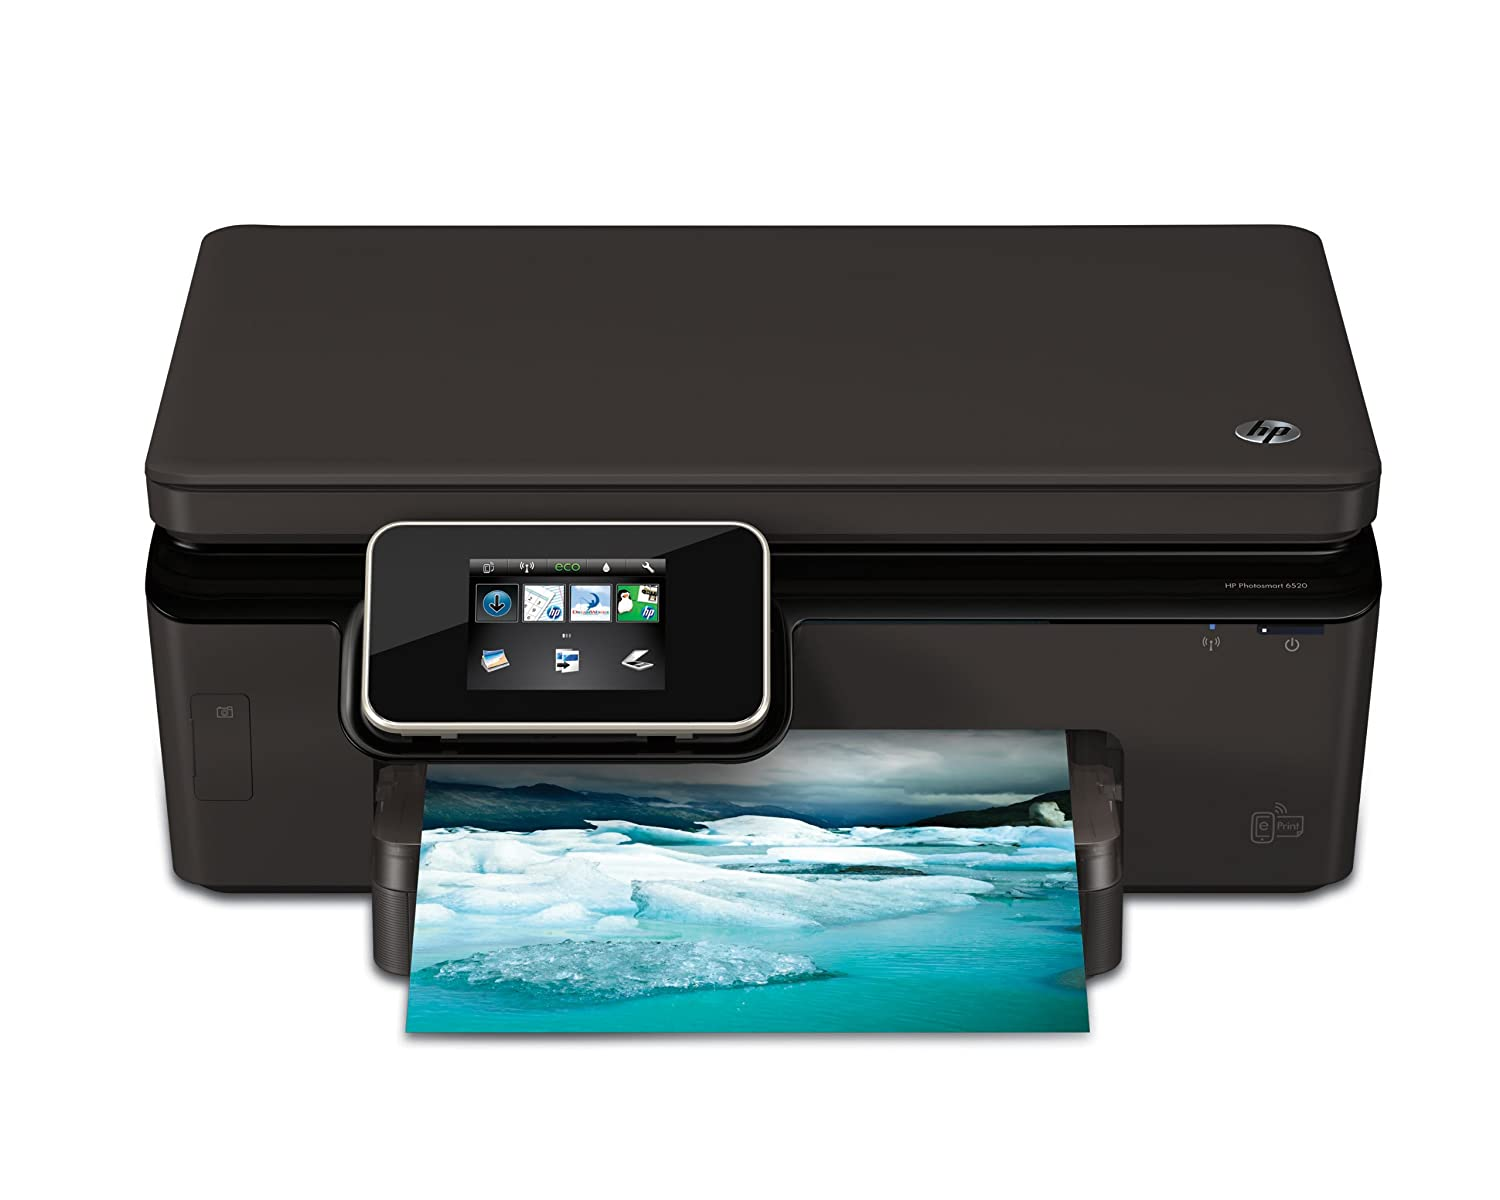 HP Photosmart 6520 e-All-in-One Tintenstrahl